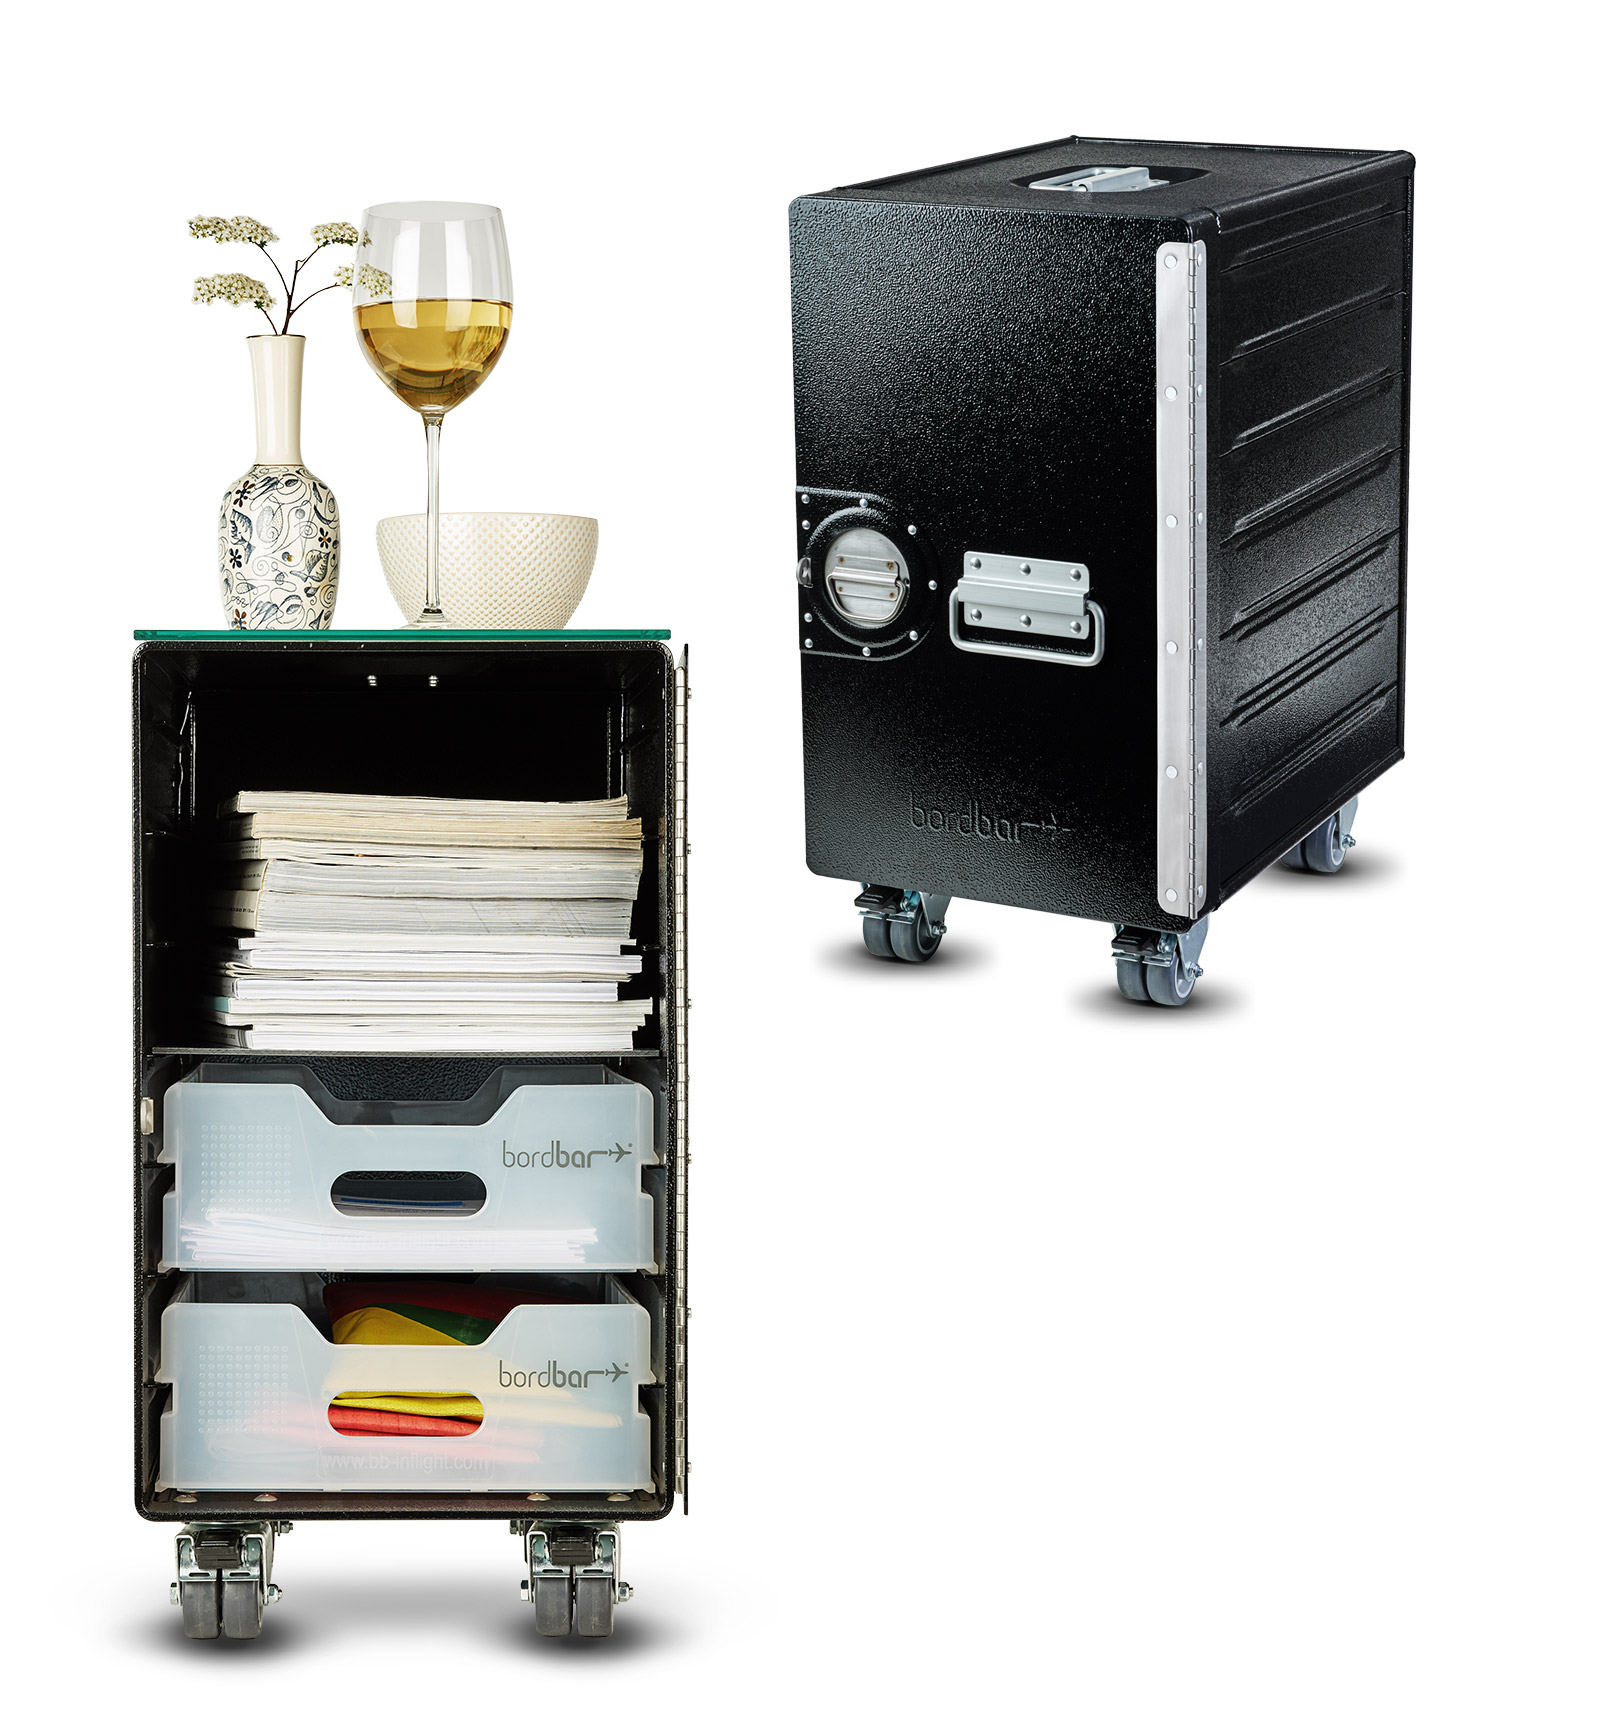 bordbar_box black | Kaffeetisch Equipment Set